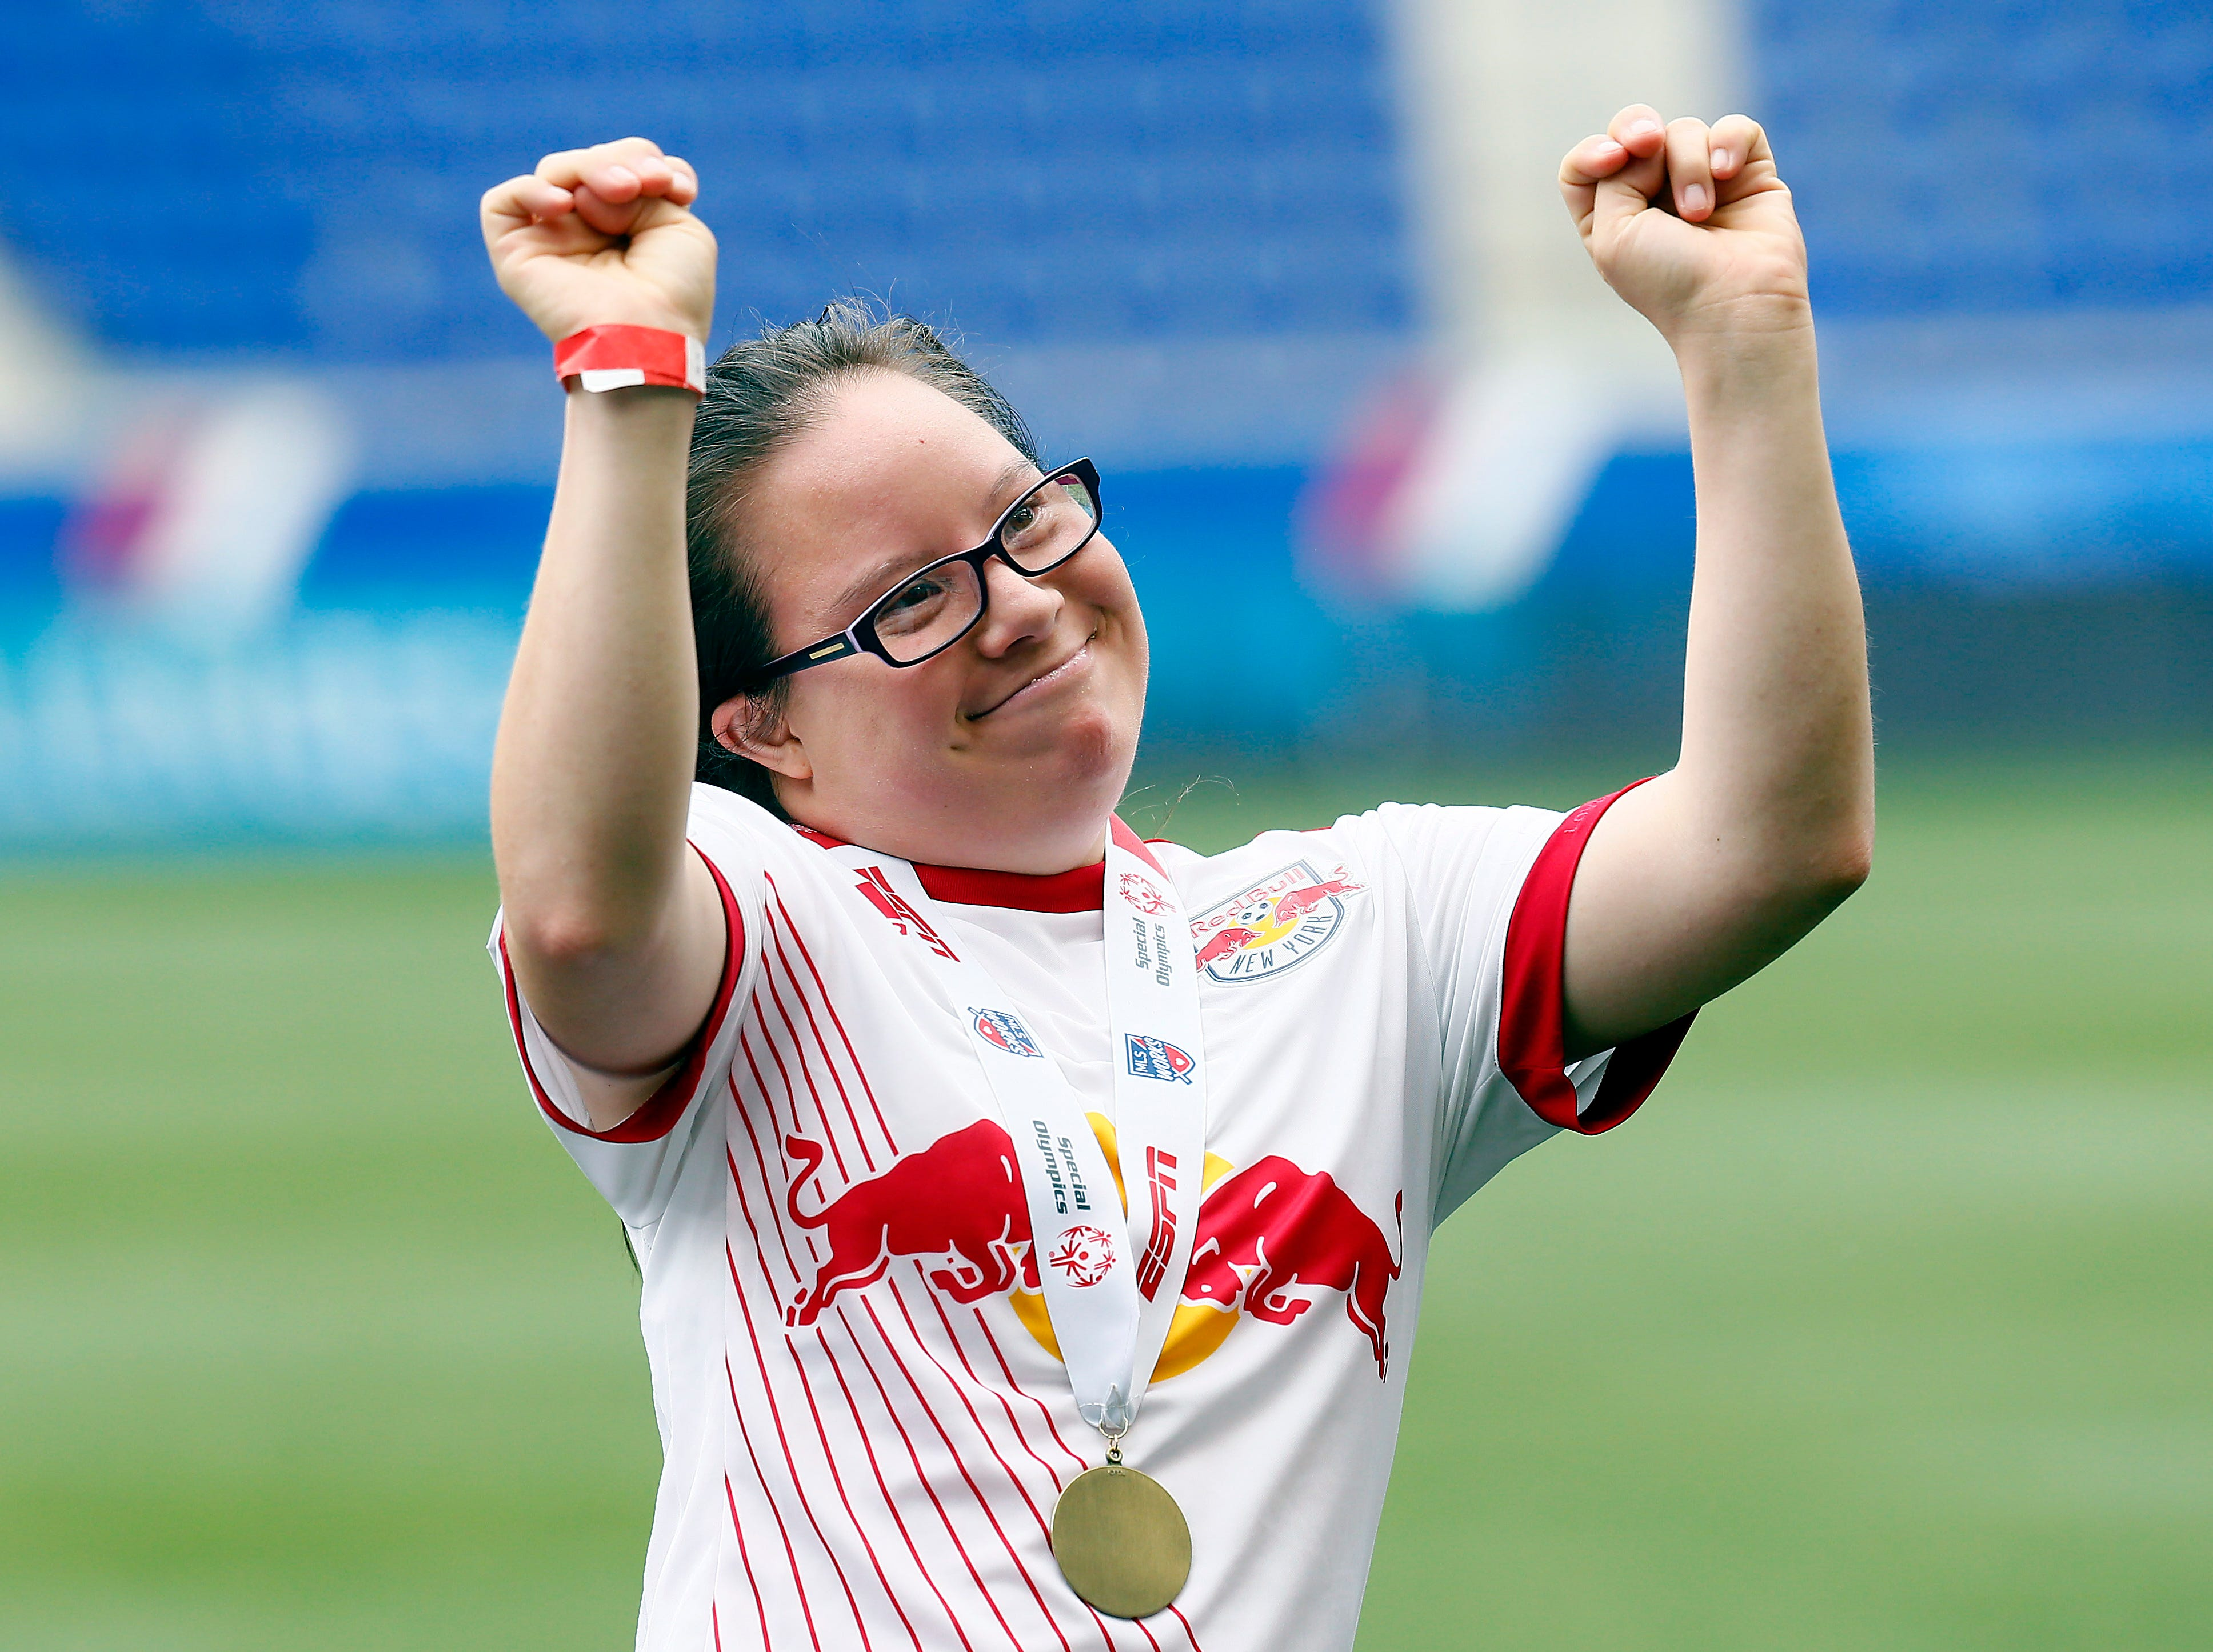 Special Olympics athlete Mai Vy Nguyen of Old Bridge playing for the Red Bulls Unified soccer team dances after receiving her medal vs. FC Dallas at the Red Bull Arena. June 23, 2018. Harrison, NJ